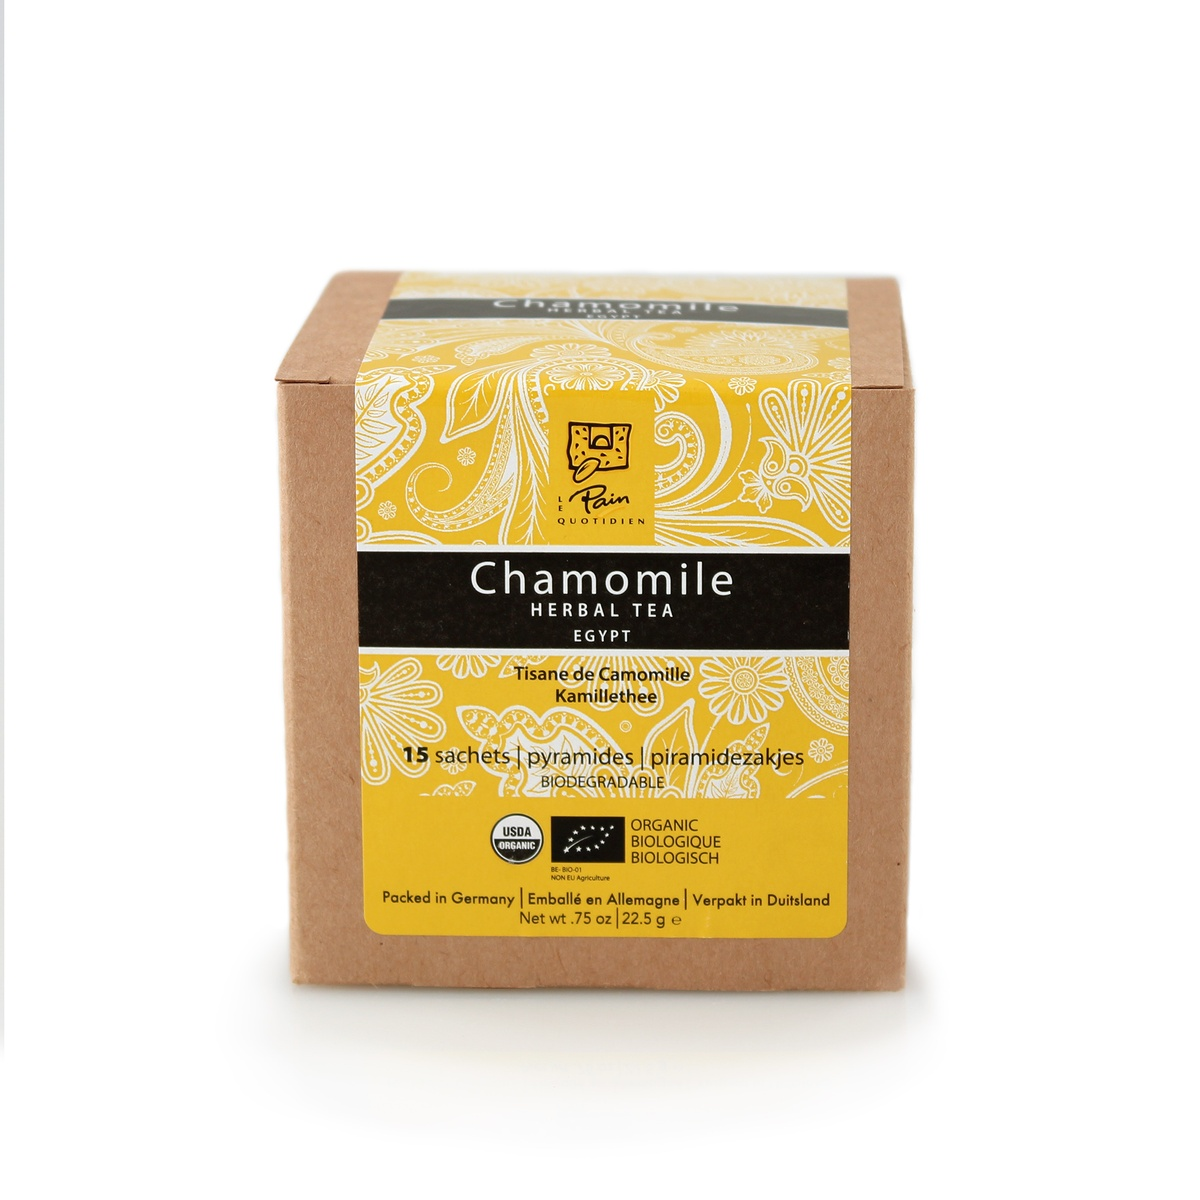 Chamomile tea price